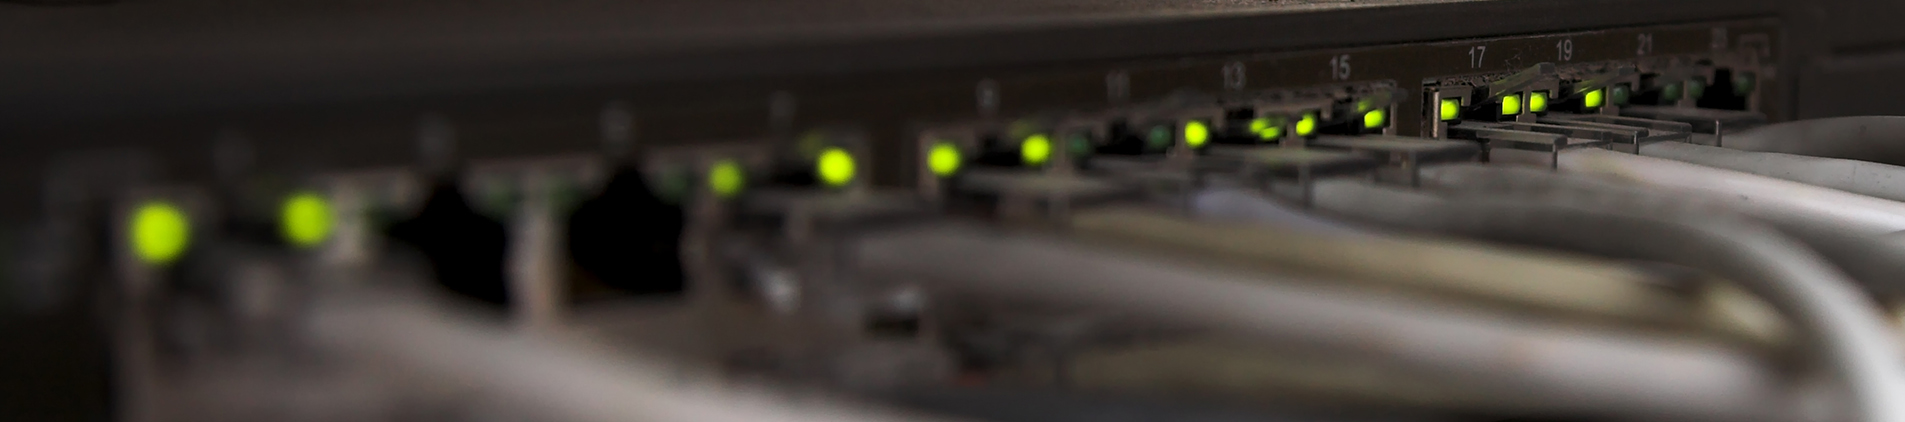 networking equipment for small business